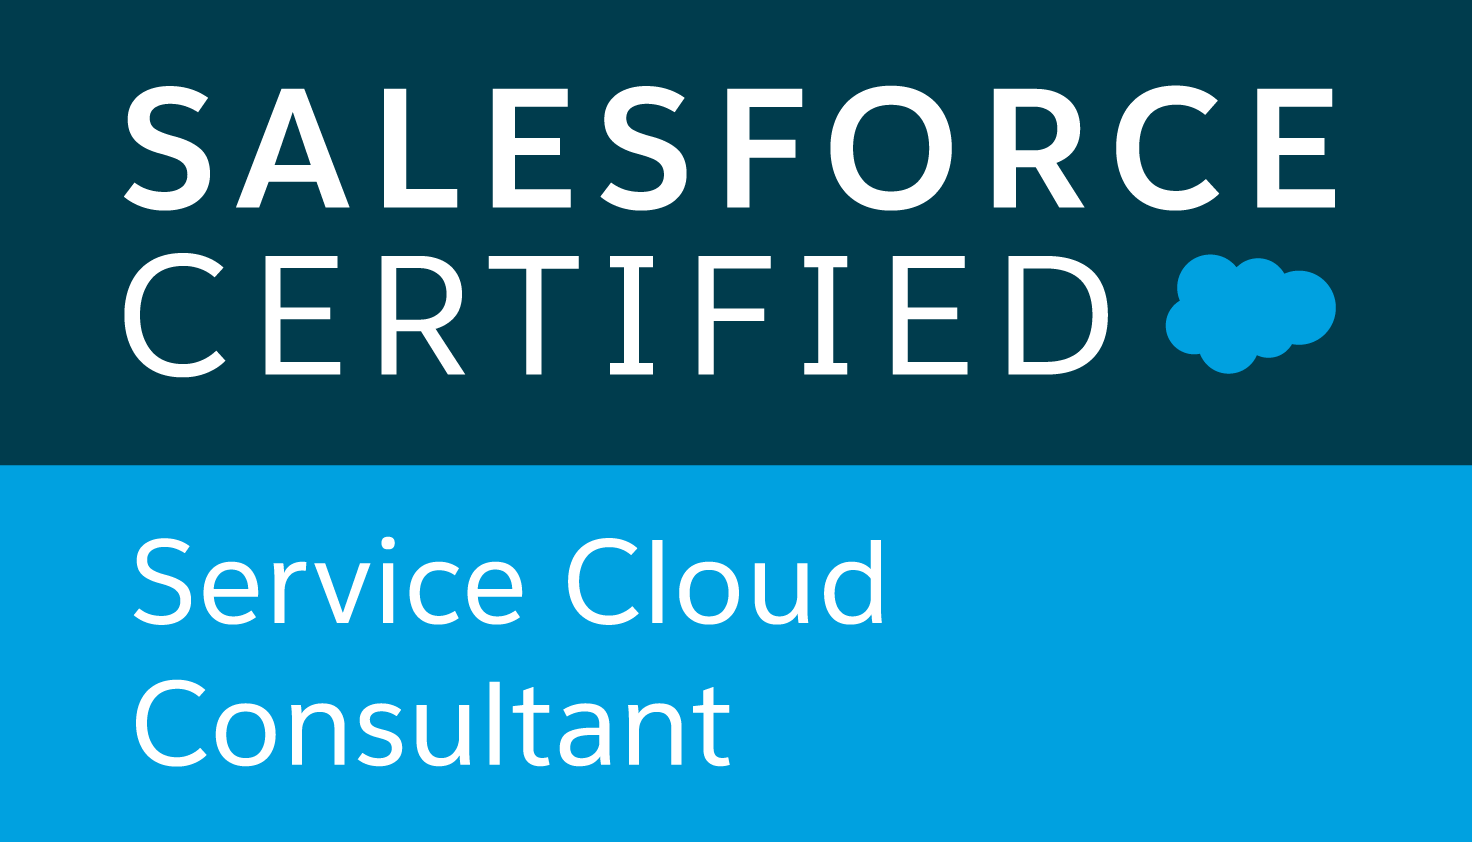 Salesforce Certified Service Cloud Consultant verification for Richard Upton